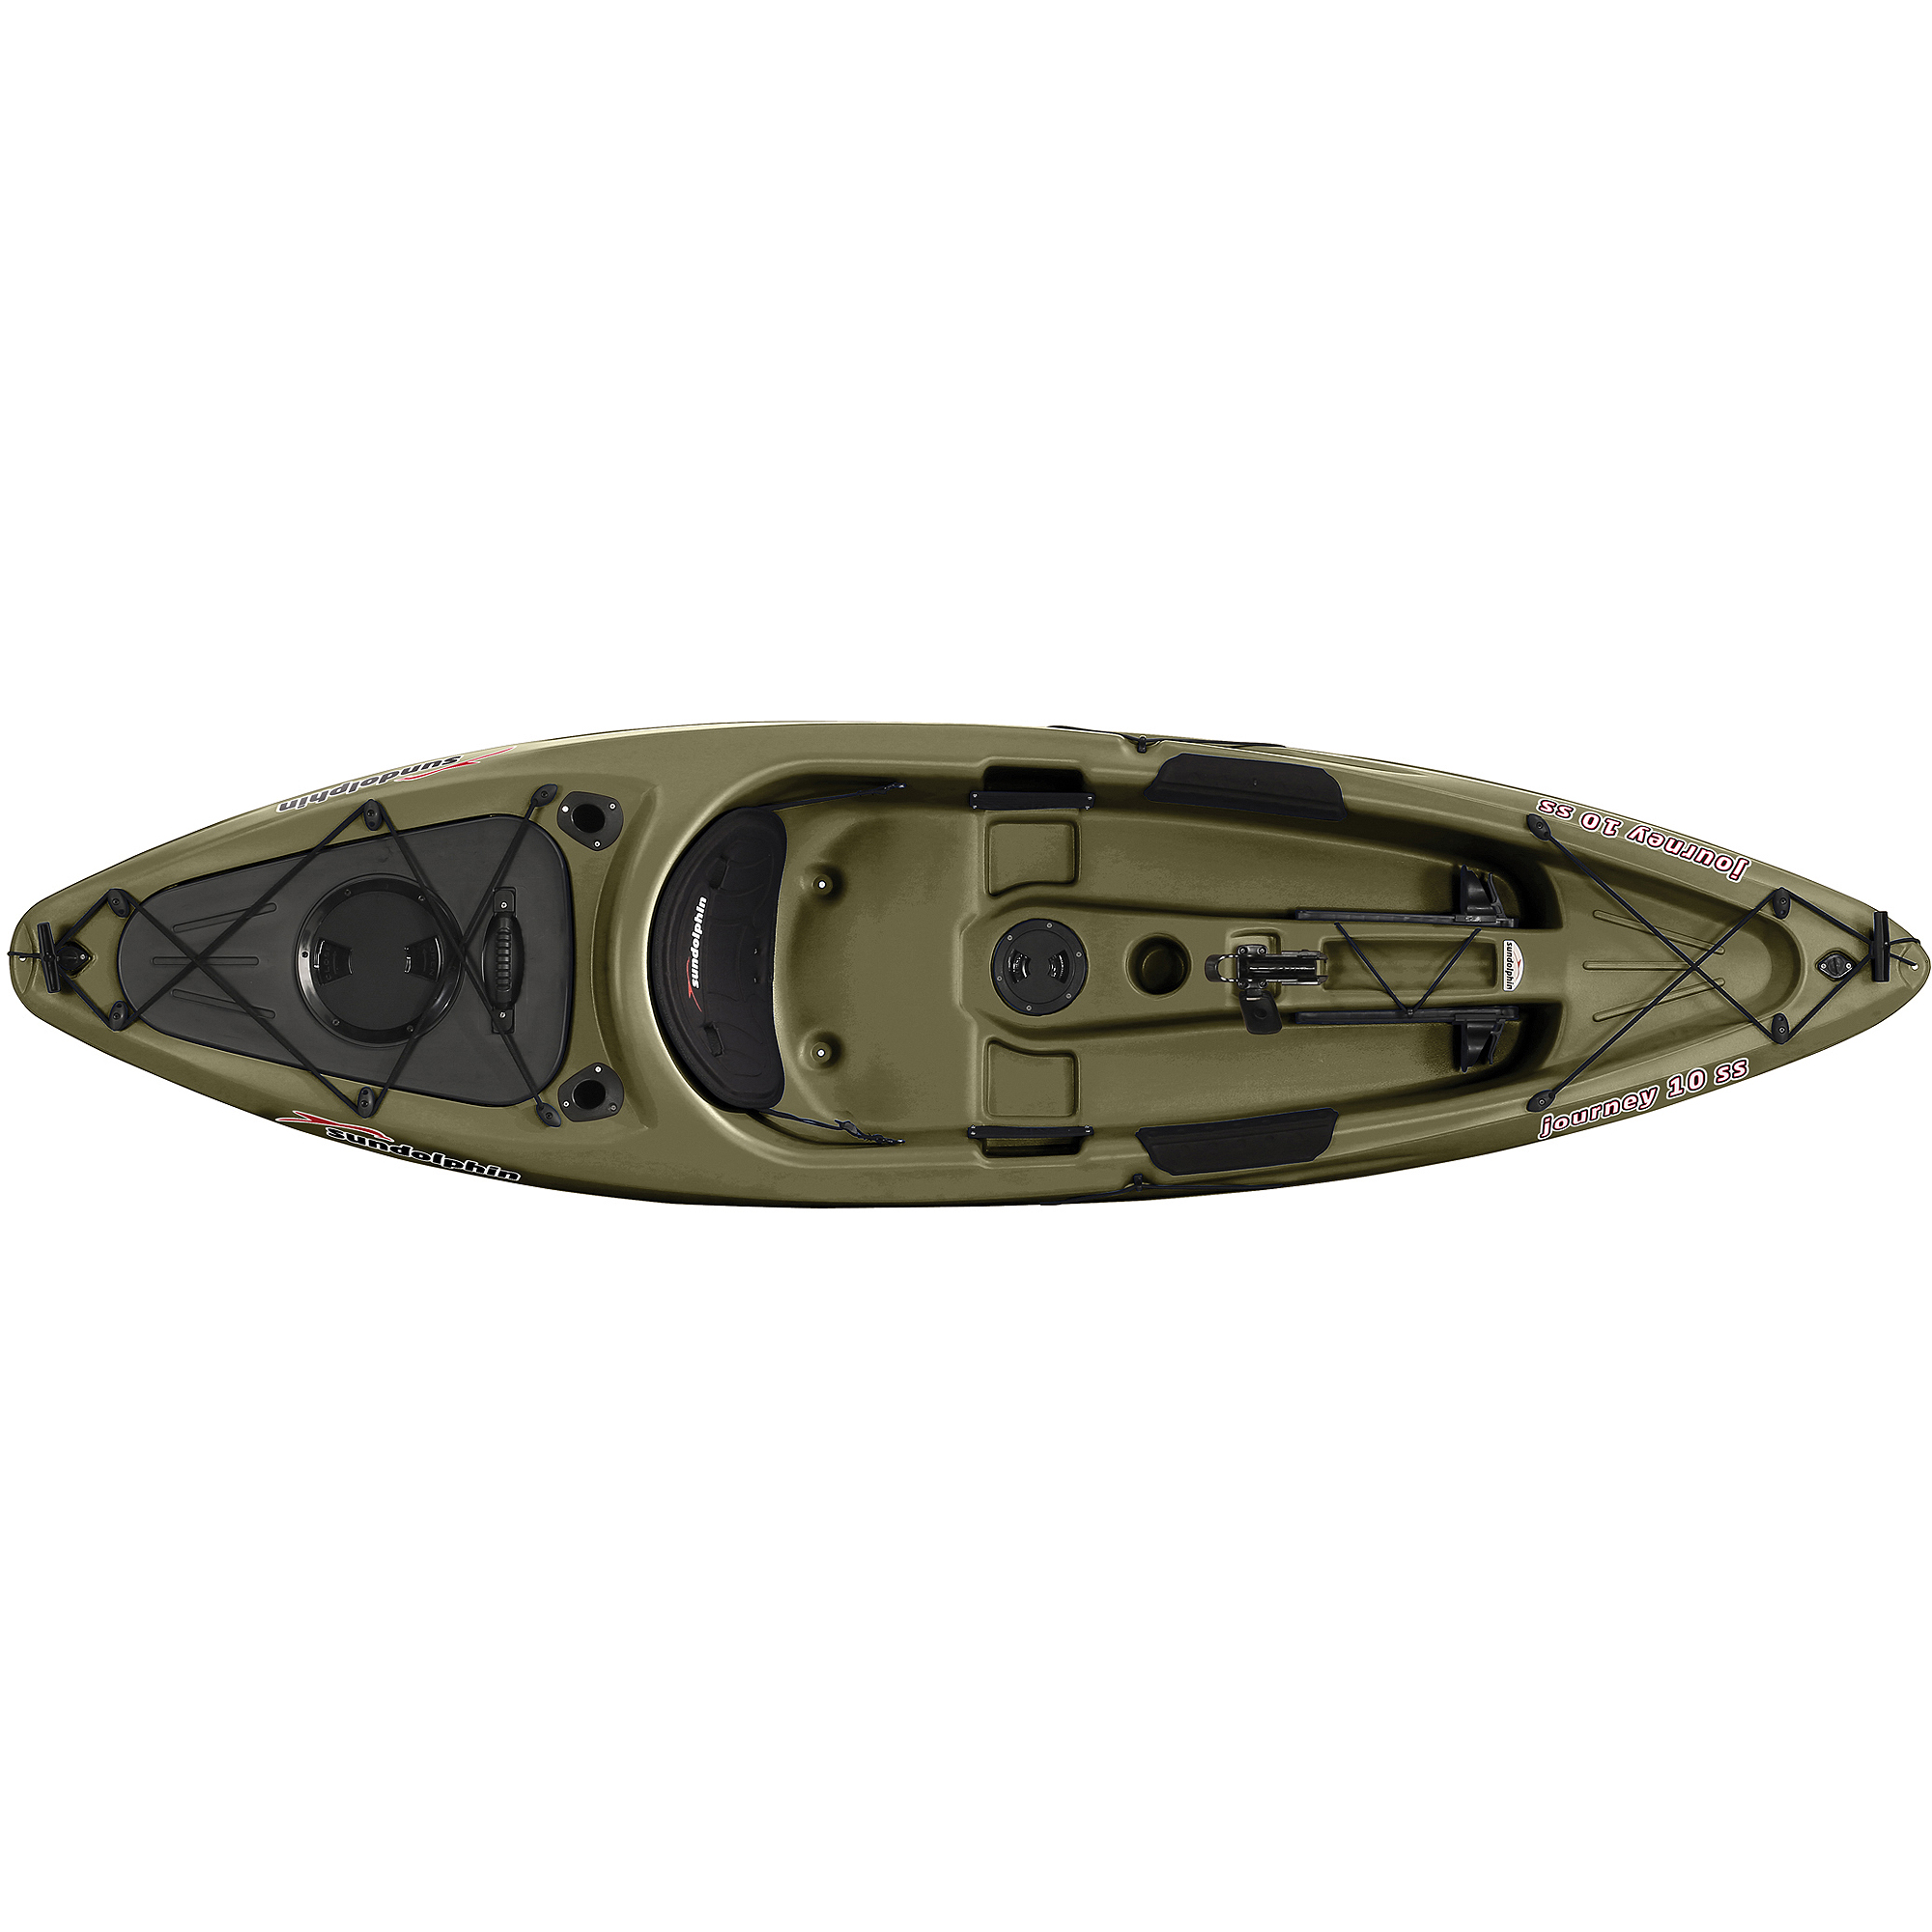 Kl industries sun dolphin journey sit on top fishing kayak for Fishing kayak walmart